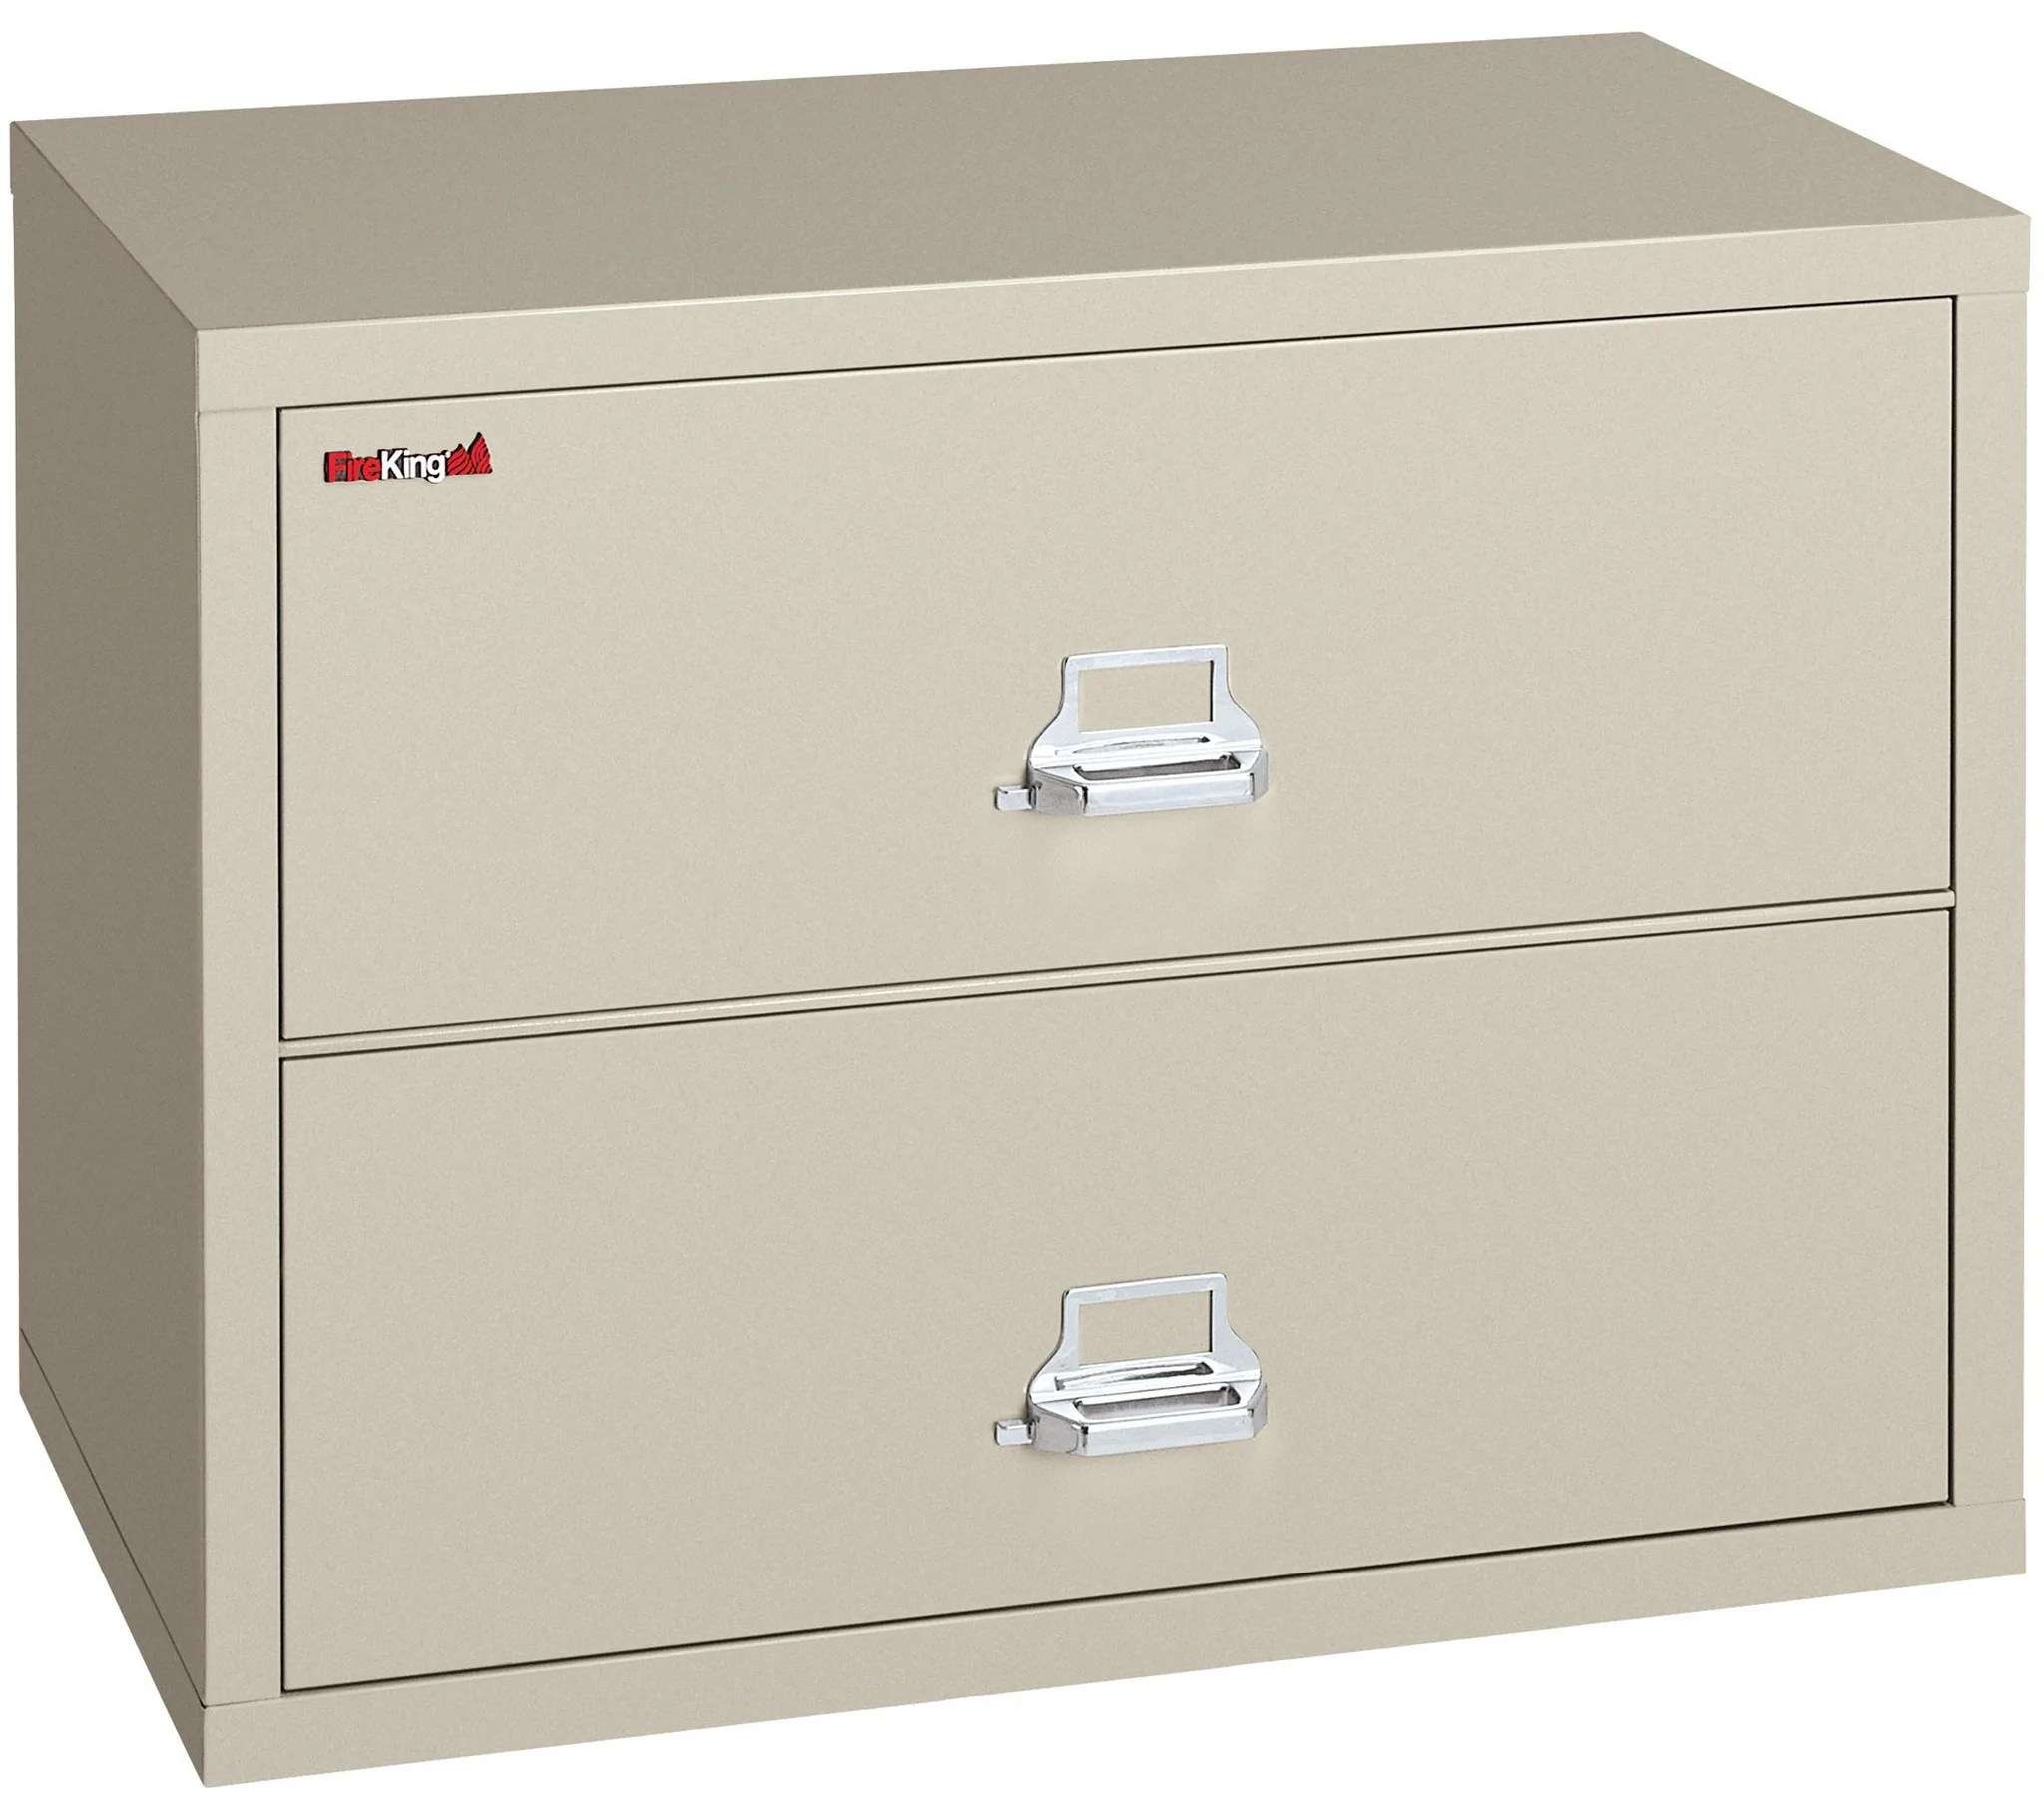 Small Filing Cabinet Fireking 2 3122 C Lateral Fire File Cabinet